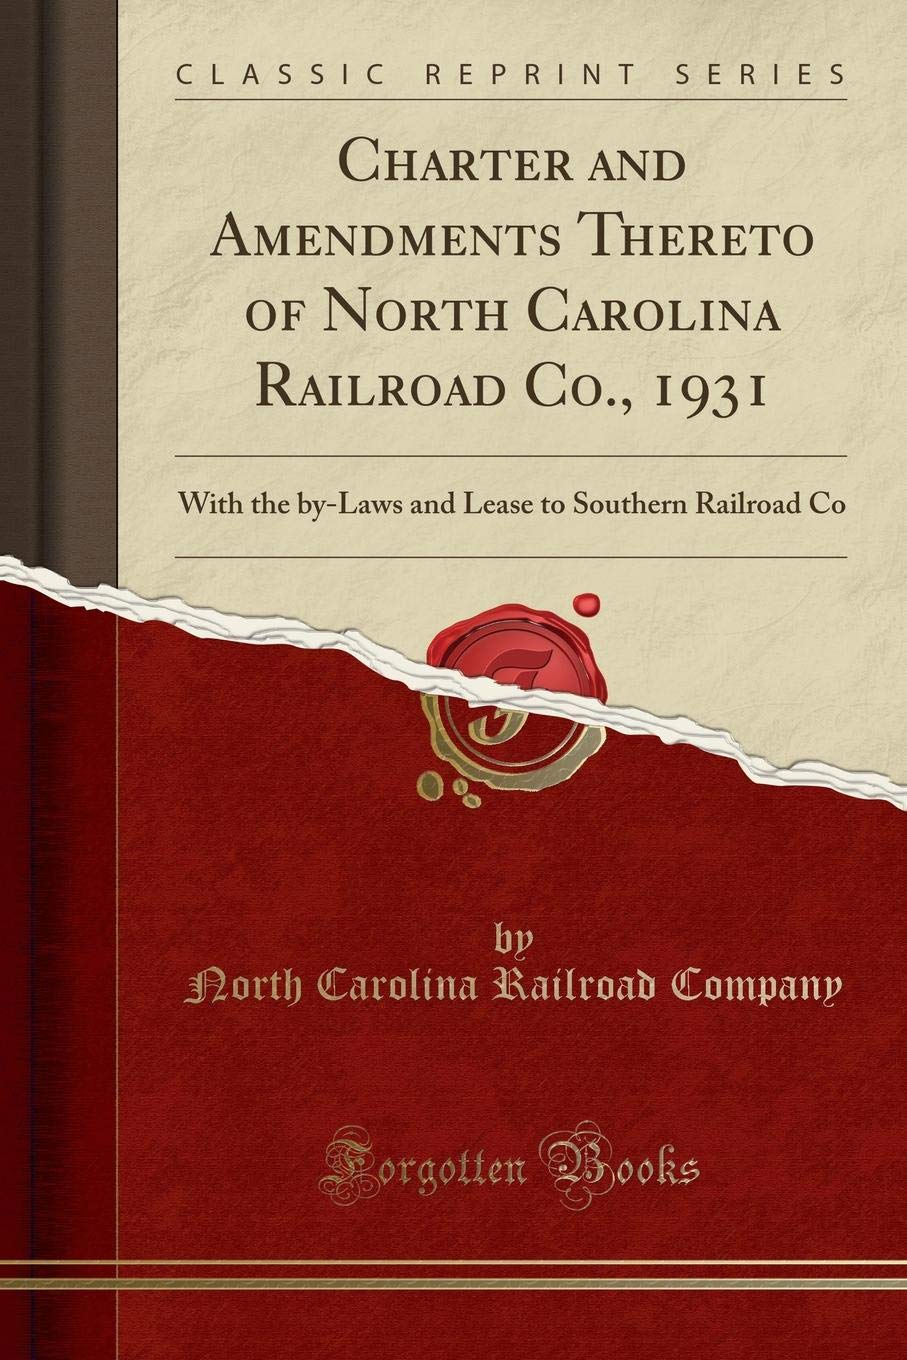 Download Charter and Amendments Thereto of North Carolina Railroad Co., 1931: With the by-Laws and Lease to Southern Railroad Co (Classic Reprint) pdf epub